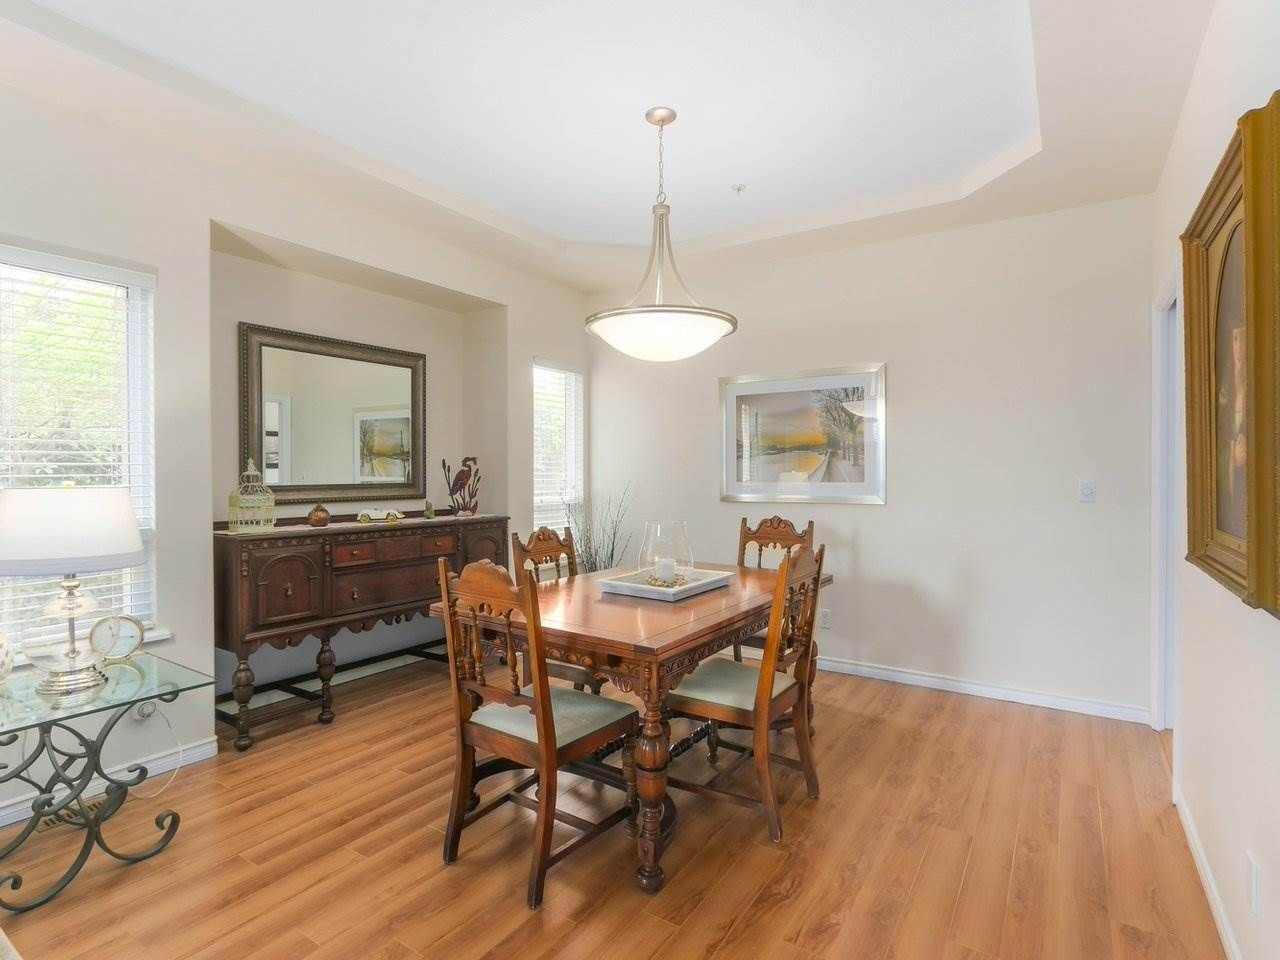 """Photo 3: Photos: 21 998 RIVERSIDE Drive in Port Coquitlam: Riverwood Townhouse for sale in """"PARKSIDE PLACE"""" : MLS®# R2371728"""